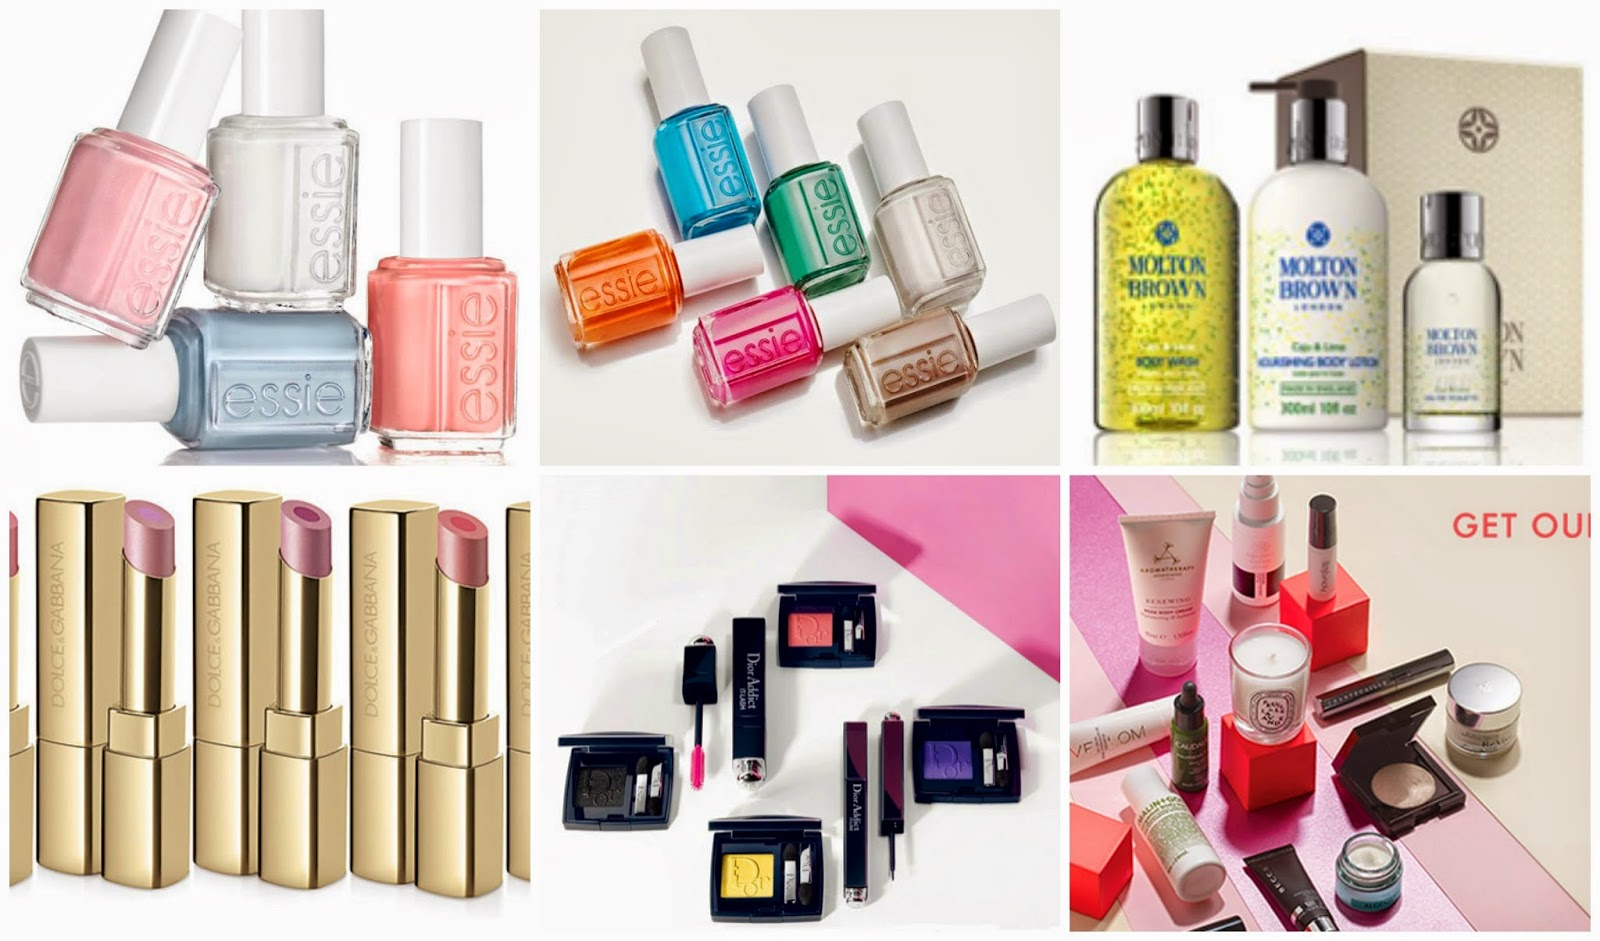 The Daily Beauty Report (12.05.14)